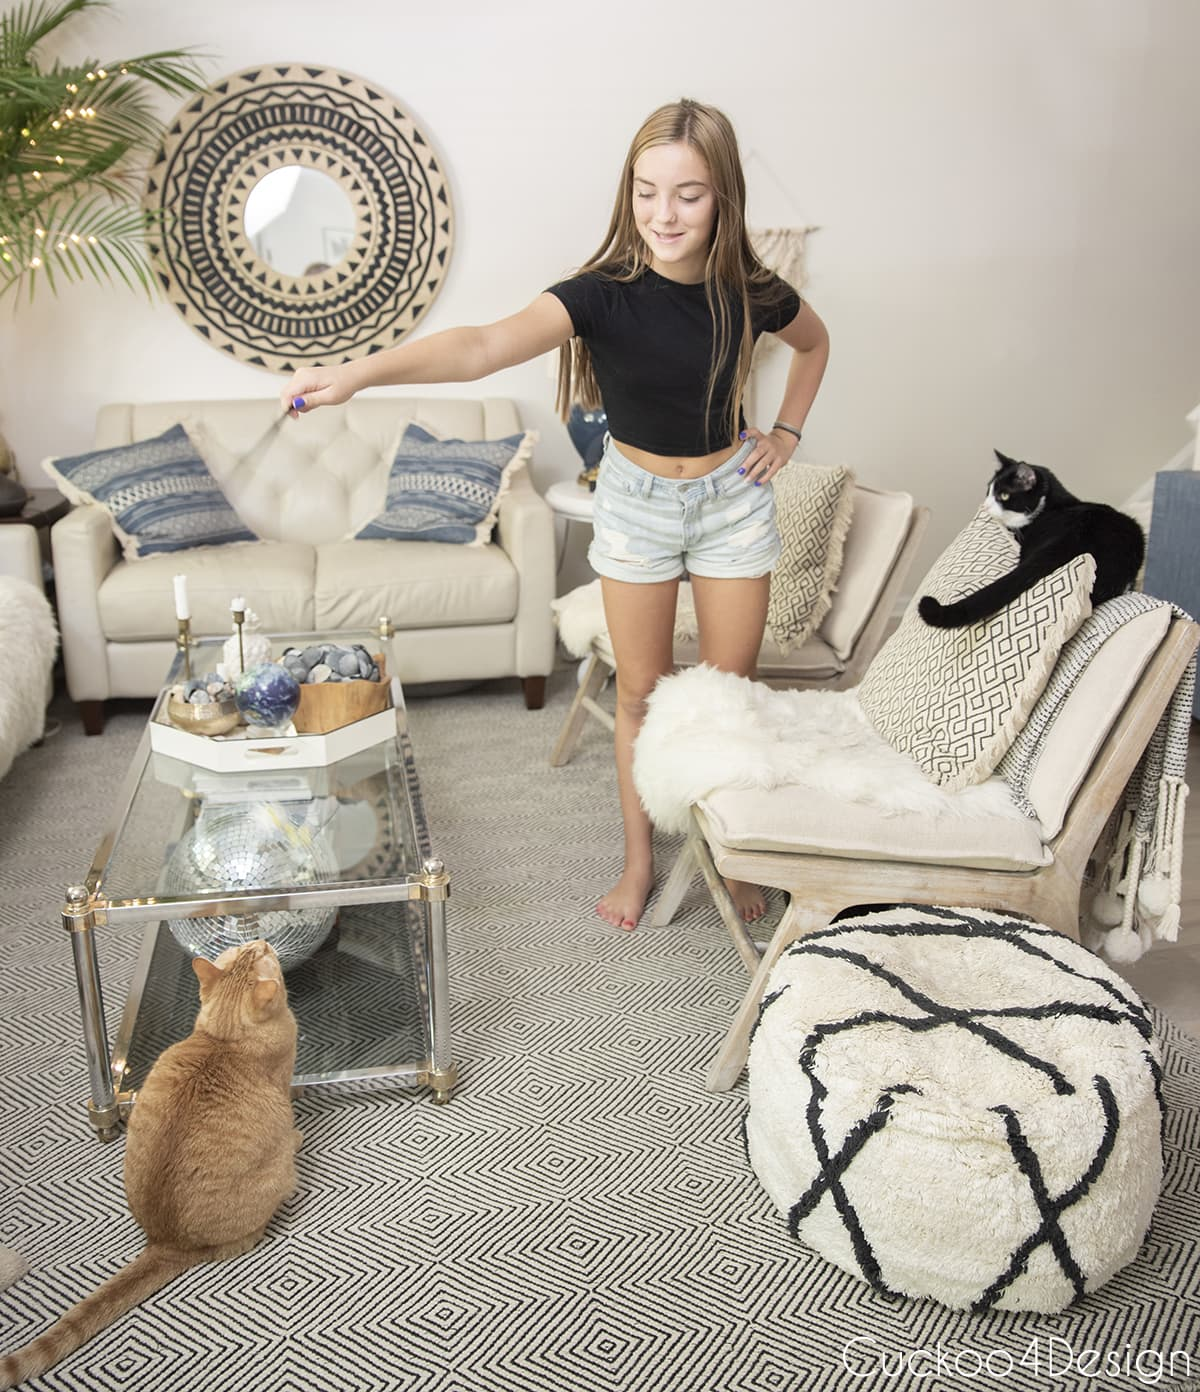 our daughter playing with the cats